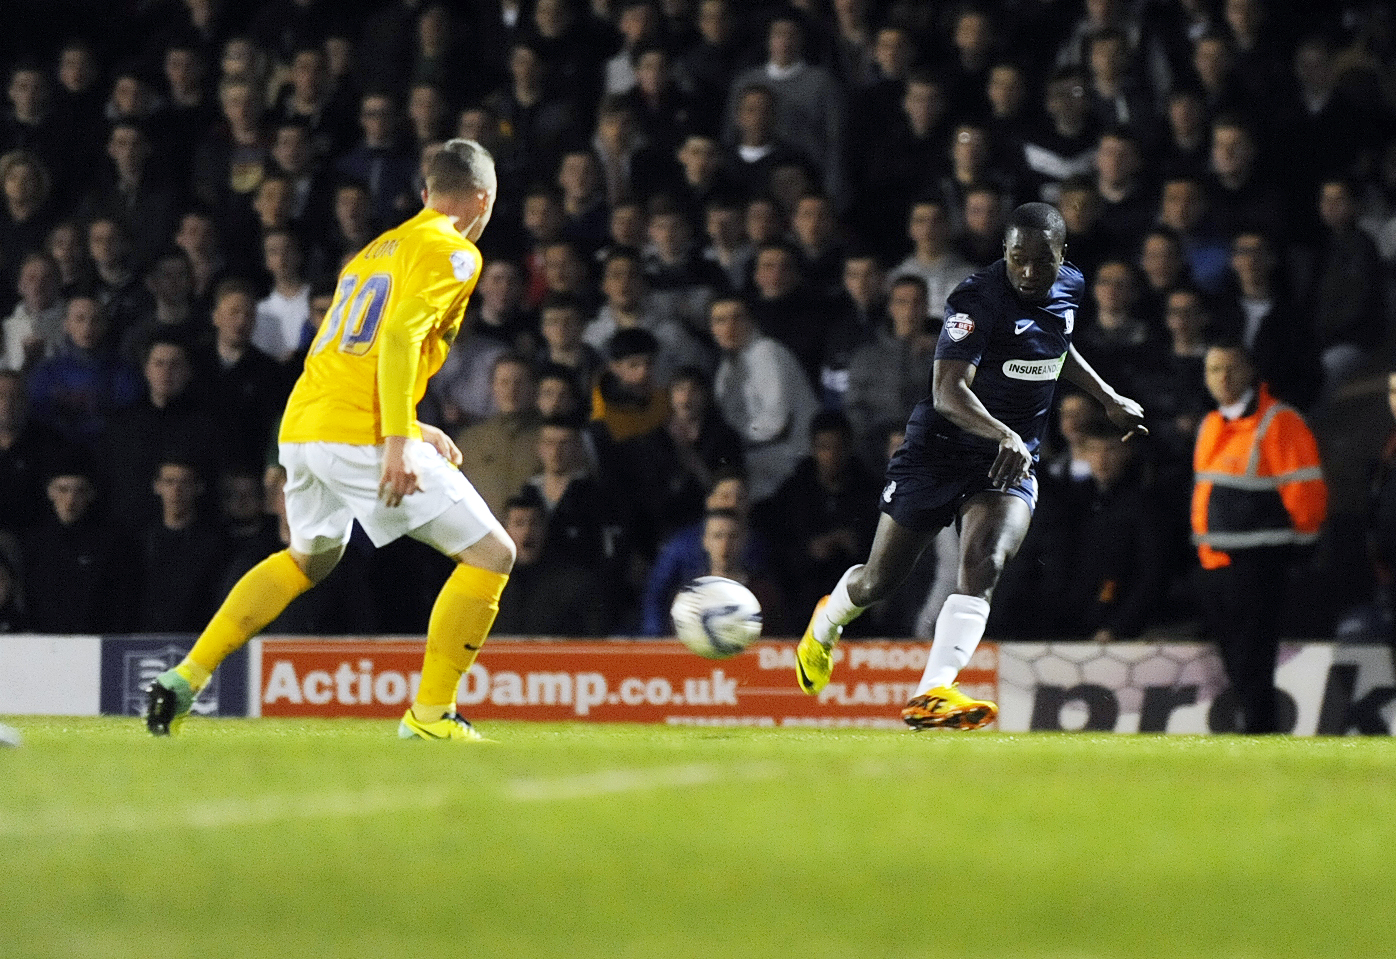 Jamar Loza crosses the ball during his impressive display against Oxford